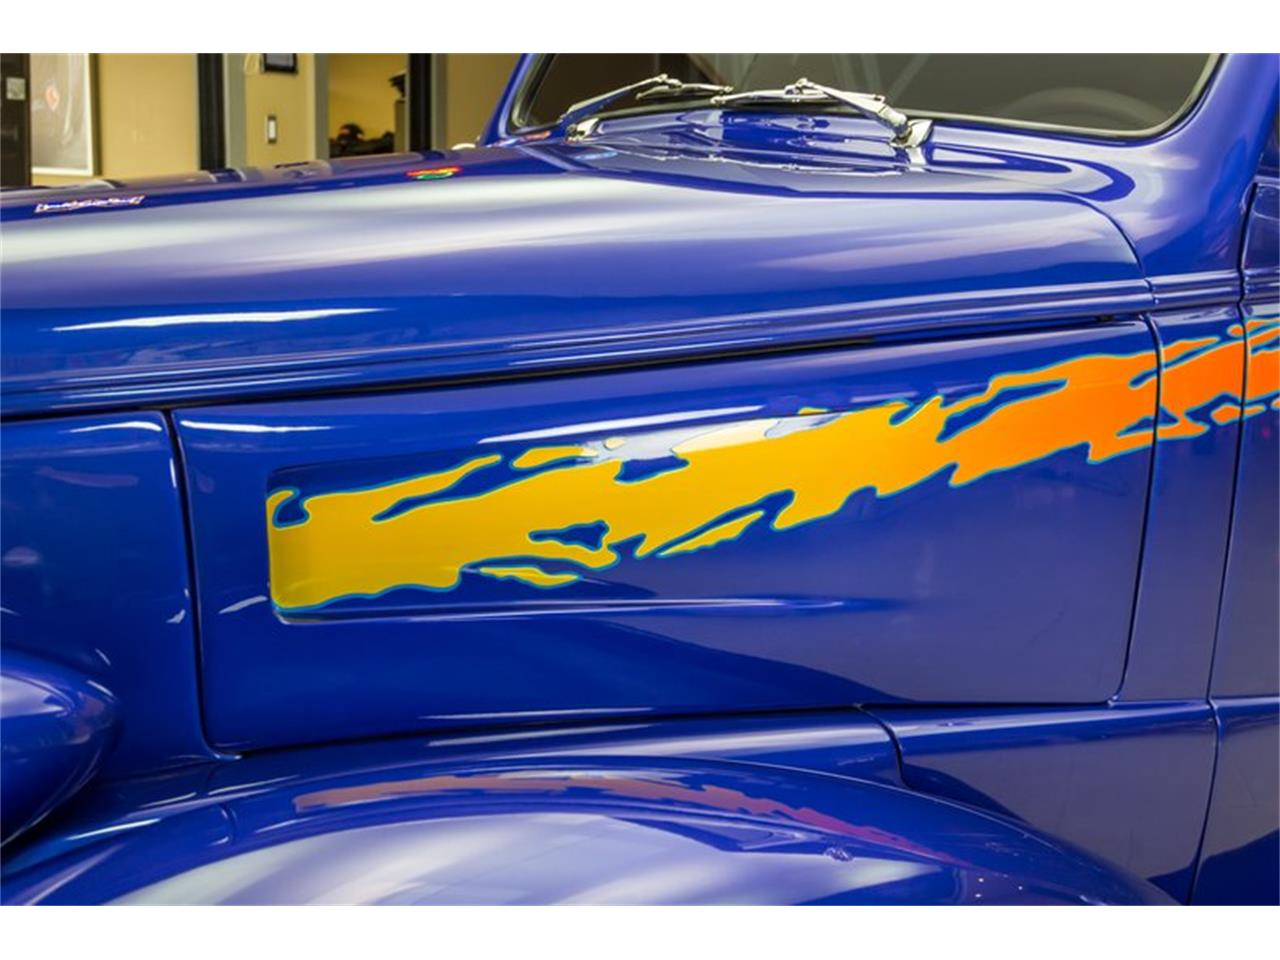 Large Picture of '37 Chevrolet Antique located in Plymouth Michigan - $49,900.00 - N75T